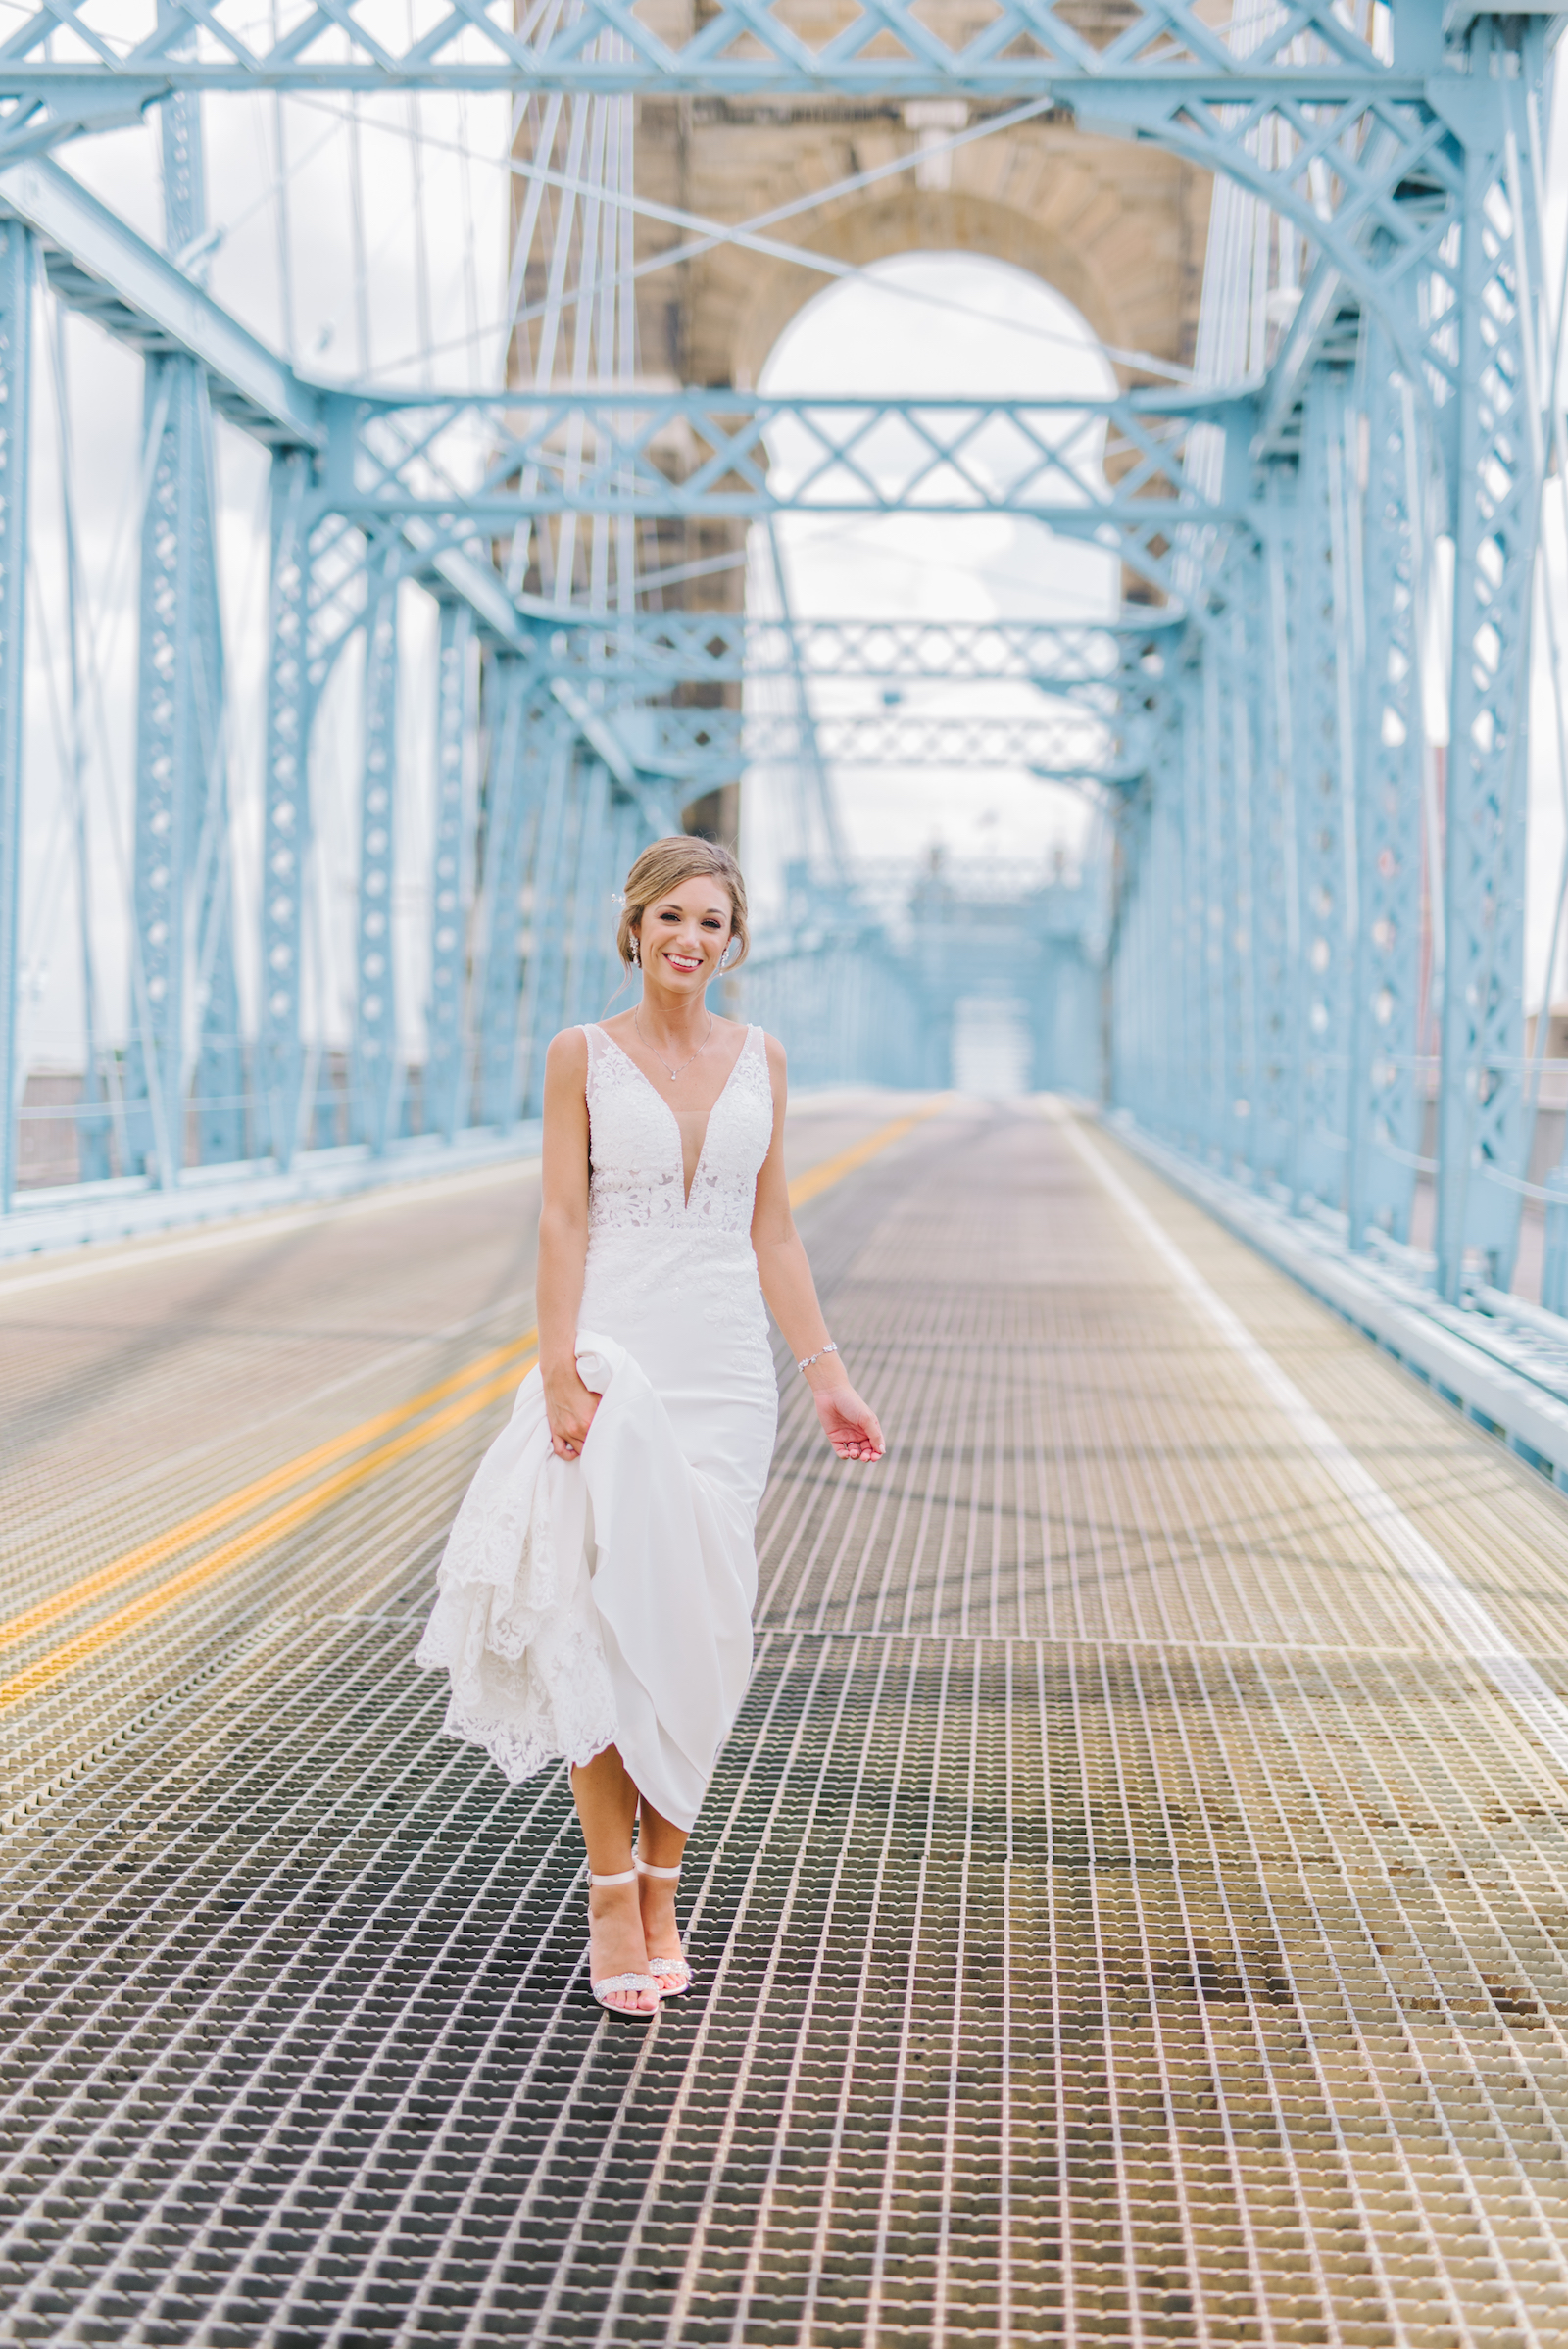 Nashville Wedding Photographer featured on Nashville Bride Guide